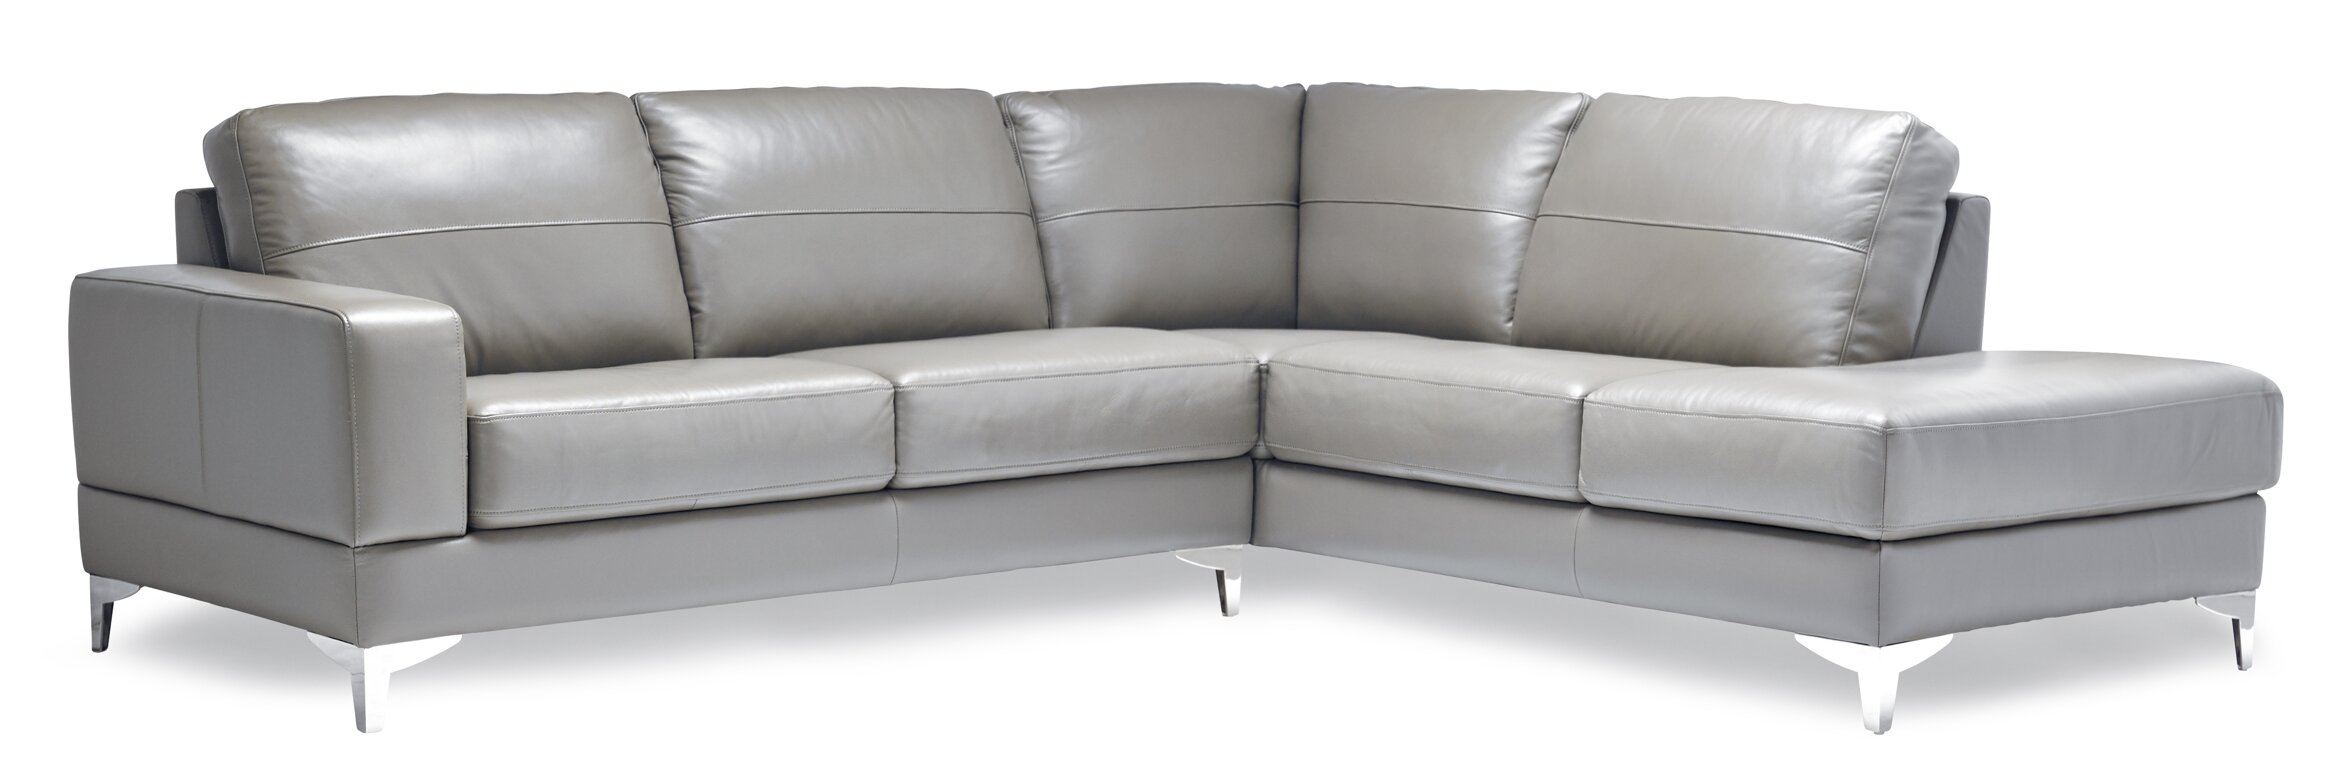 Leather Sectional Sofas Youll Love Wayfair - Real leather sectional sofa